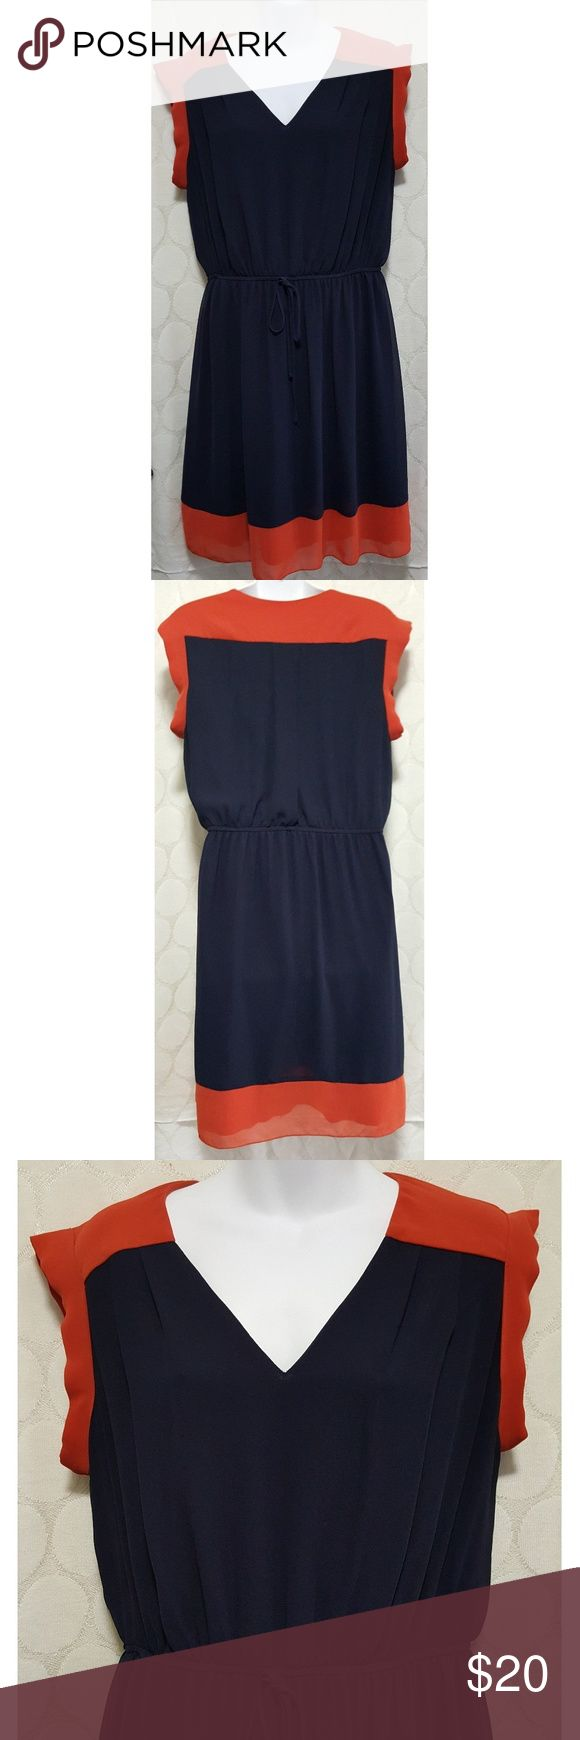 En Focus Sheer Blue and Tangerine Tie Belt Dress En Focus Sheer Blue and tangerine tie belt dress. Excellent used condition. Fully lined. Super comfy. Smoke free home. Size 14W. En Focus Dresses